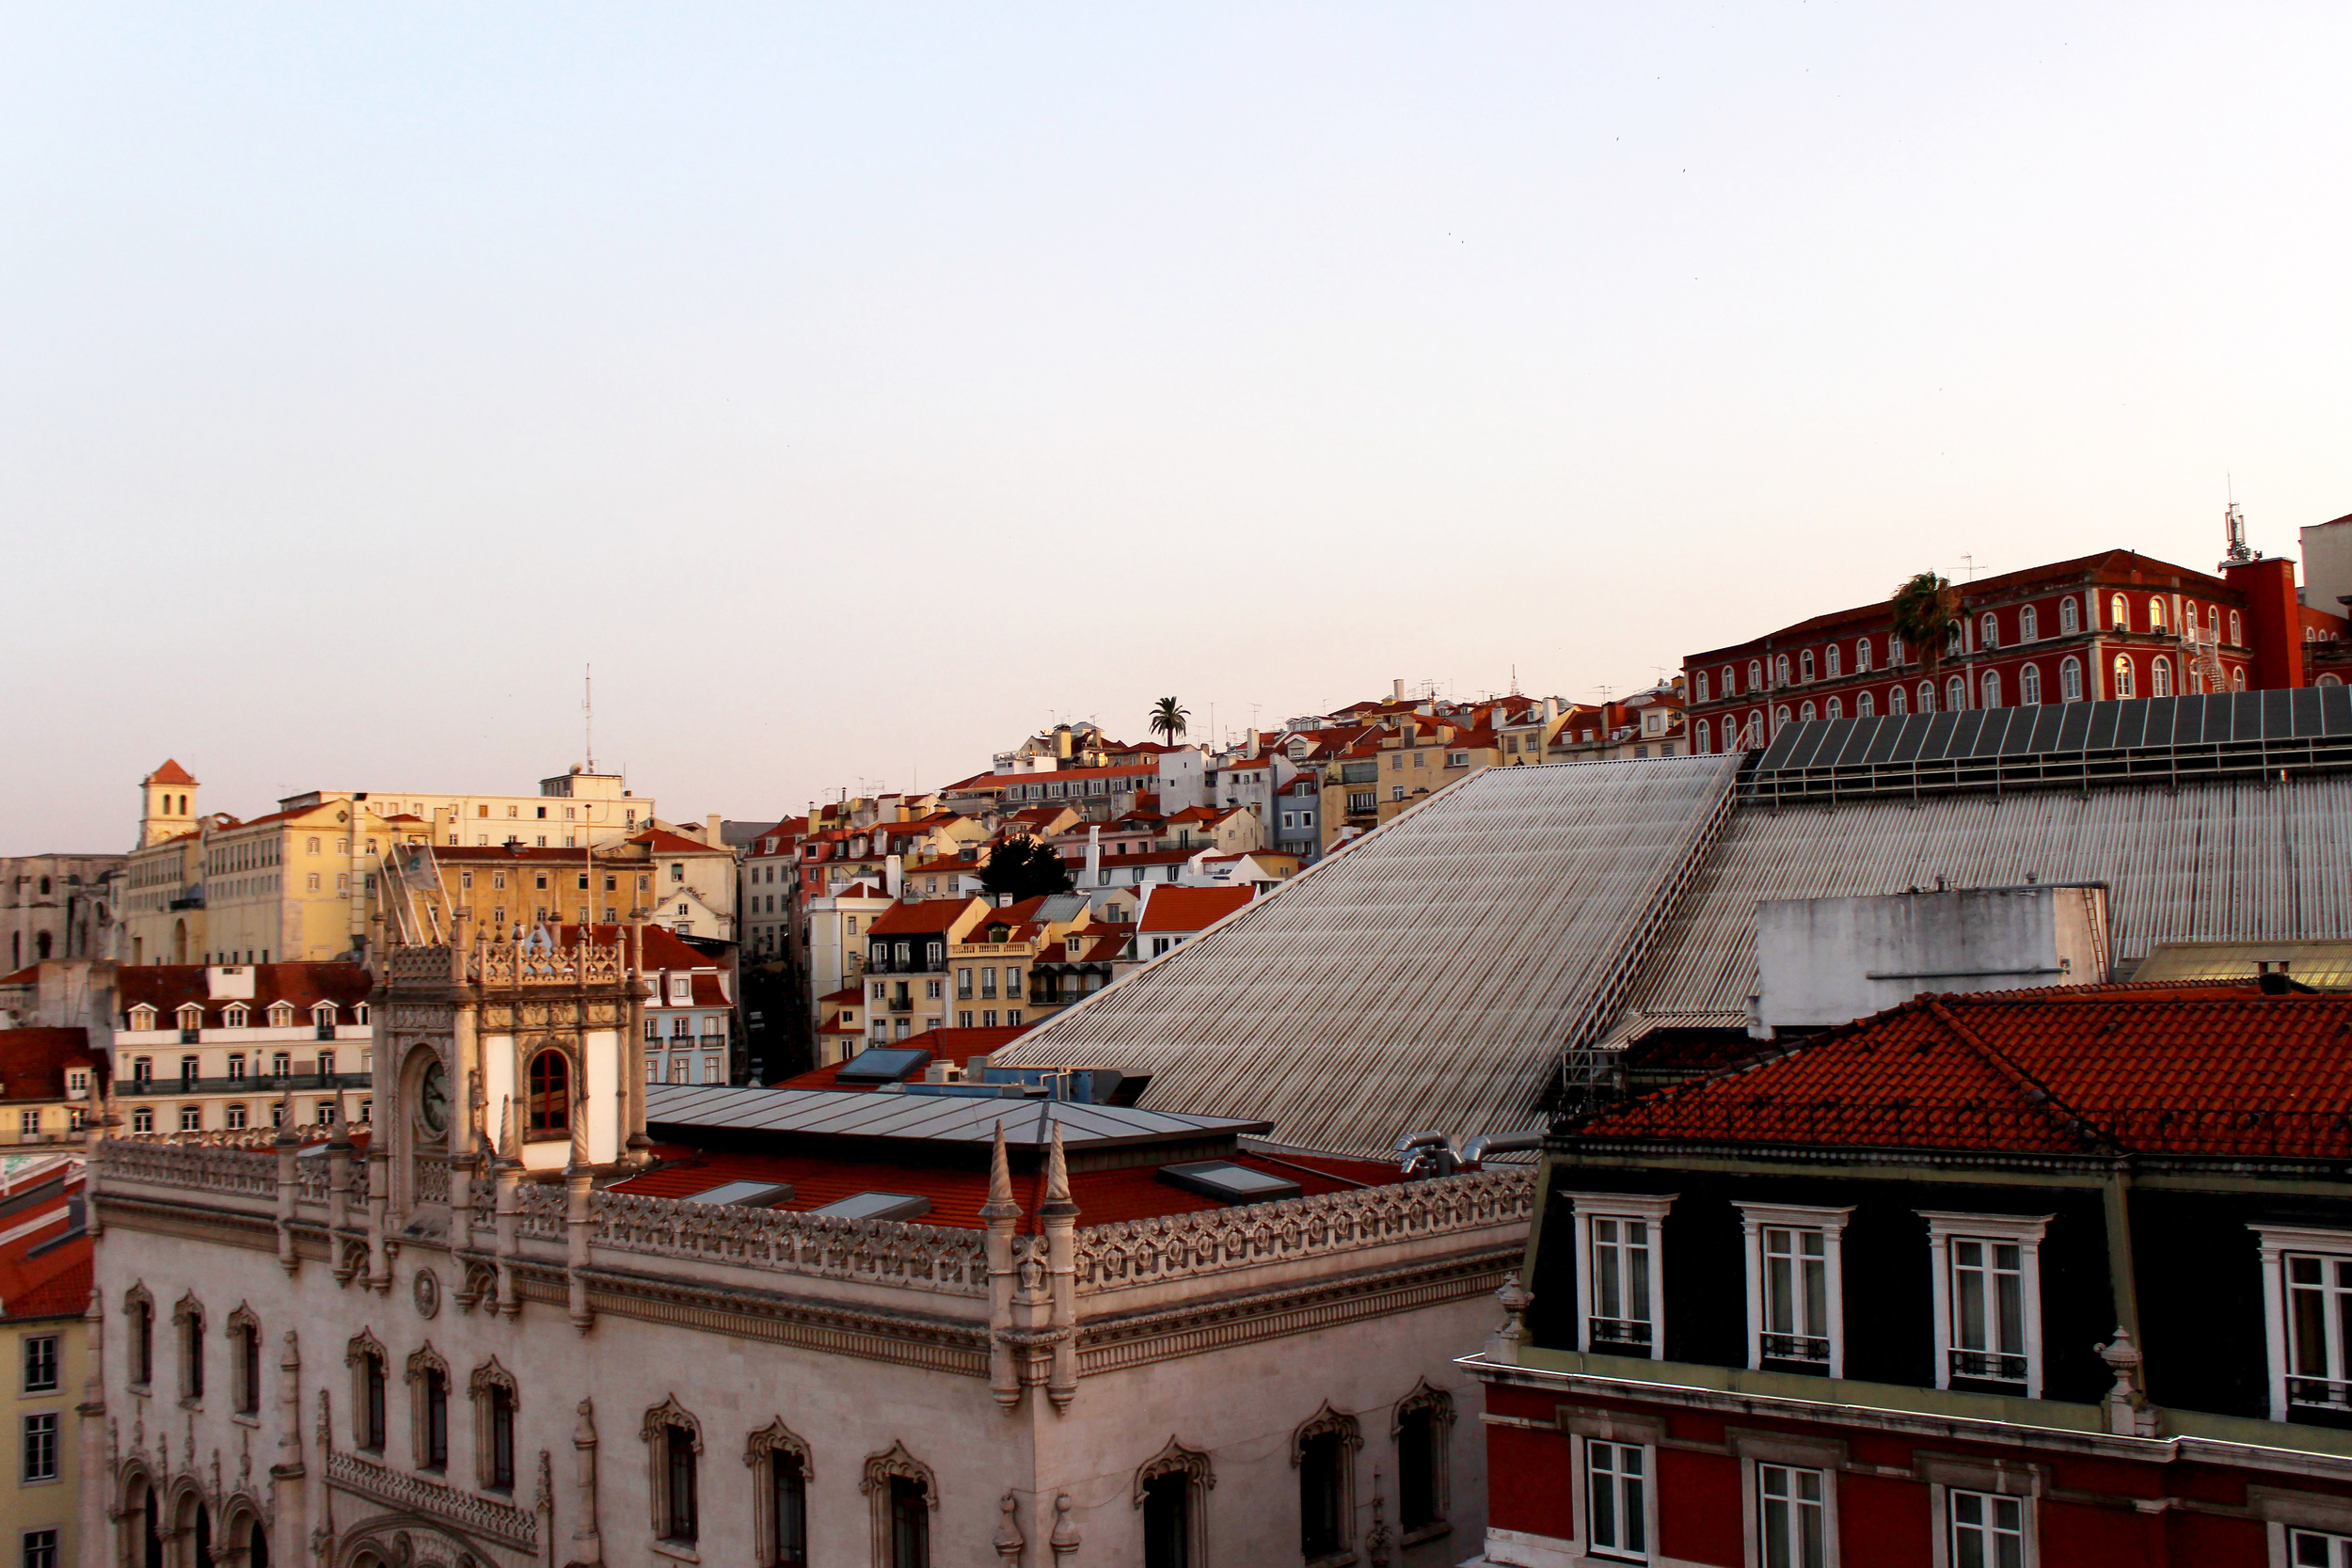 Admiring LIsbon's architecture from the rooftop terrace